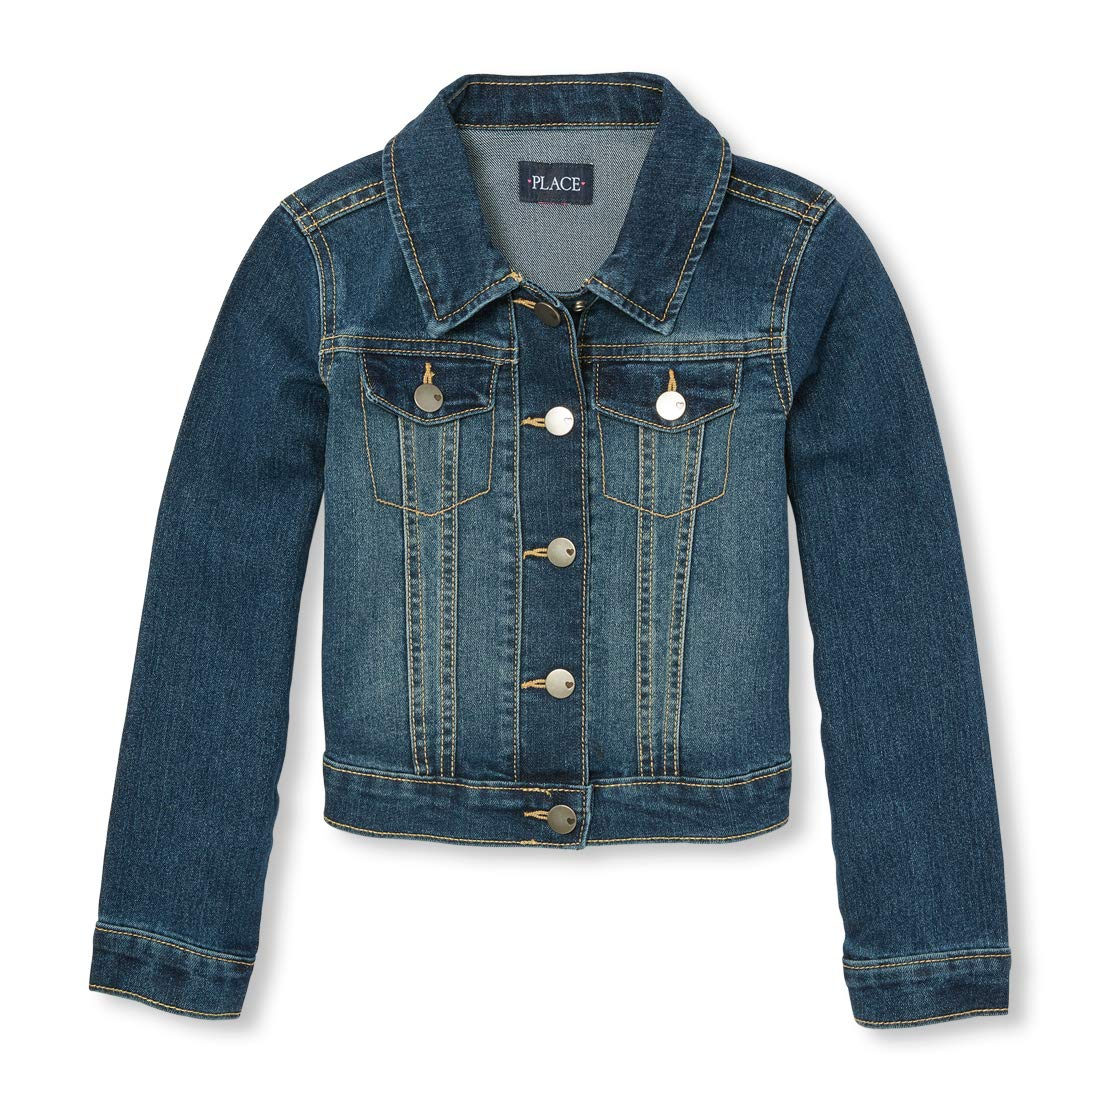 The Children's Place Big Girls' Denim Jacket, Dark Stone, Medium/7-8 by The Children's Place